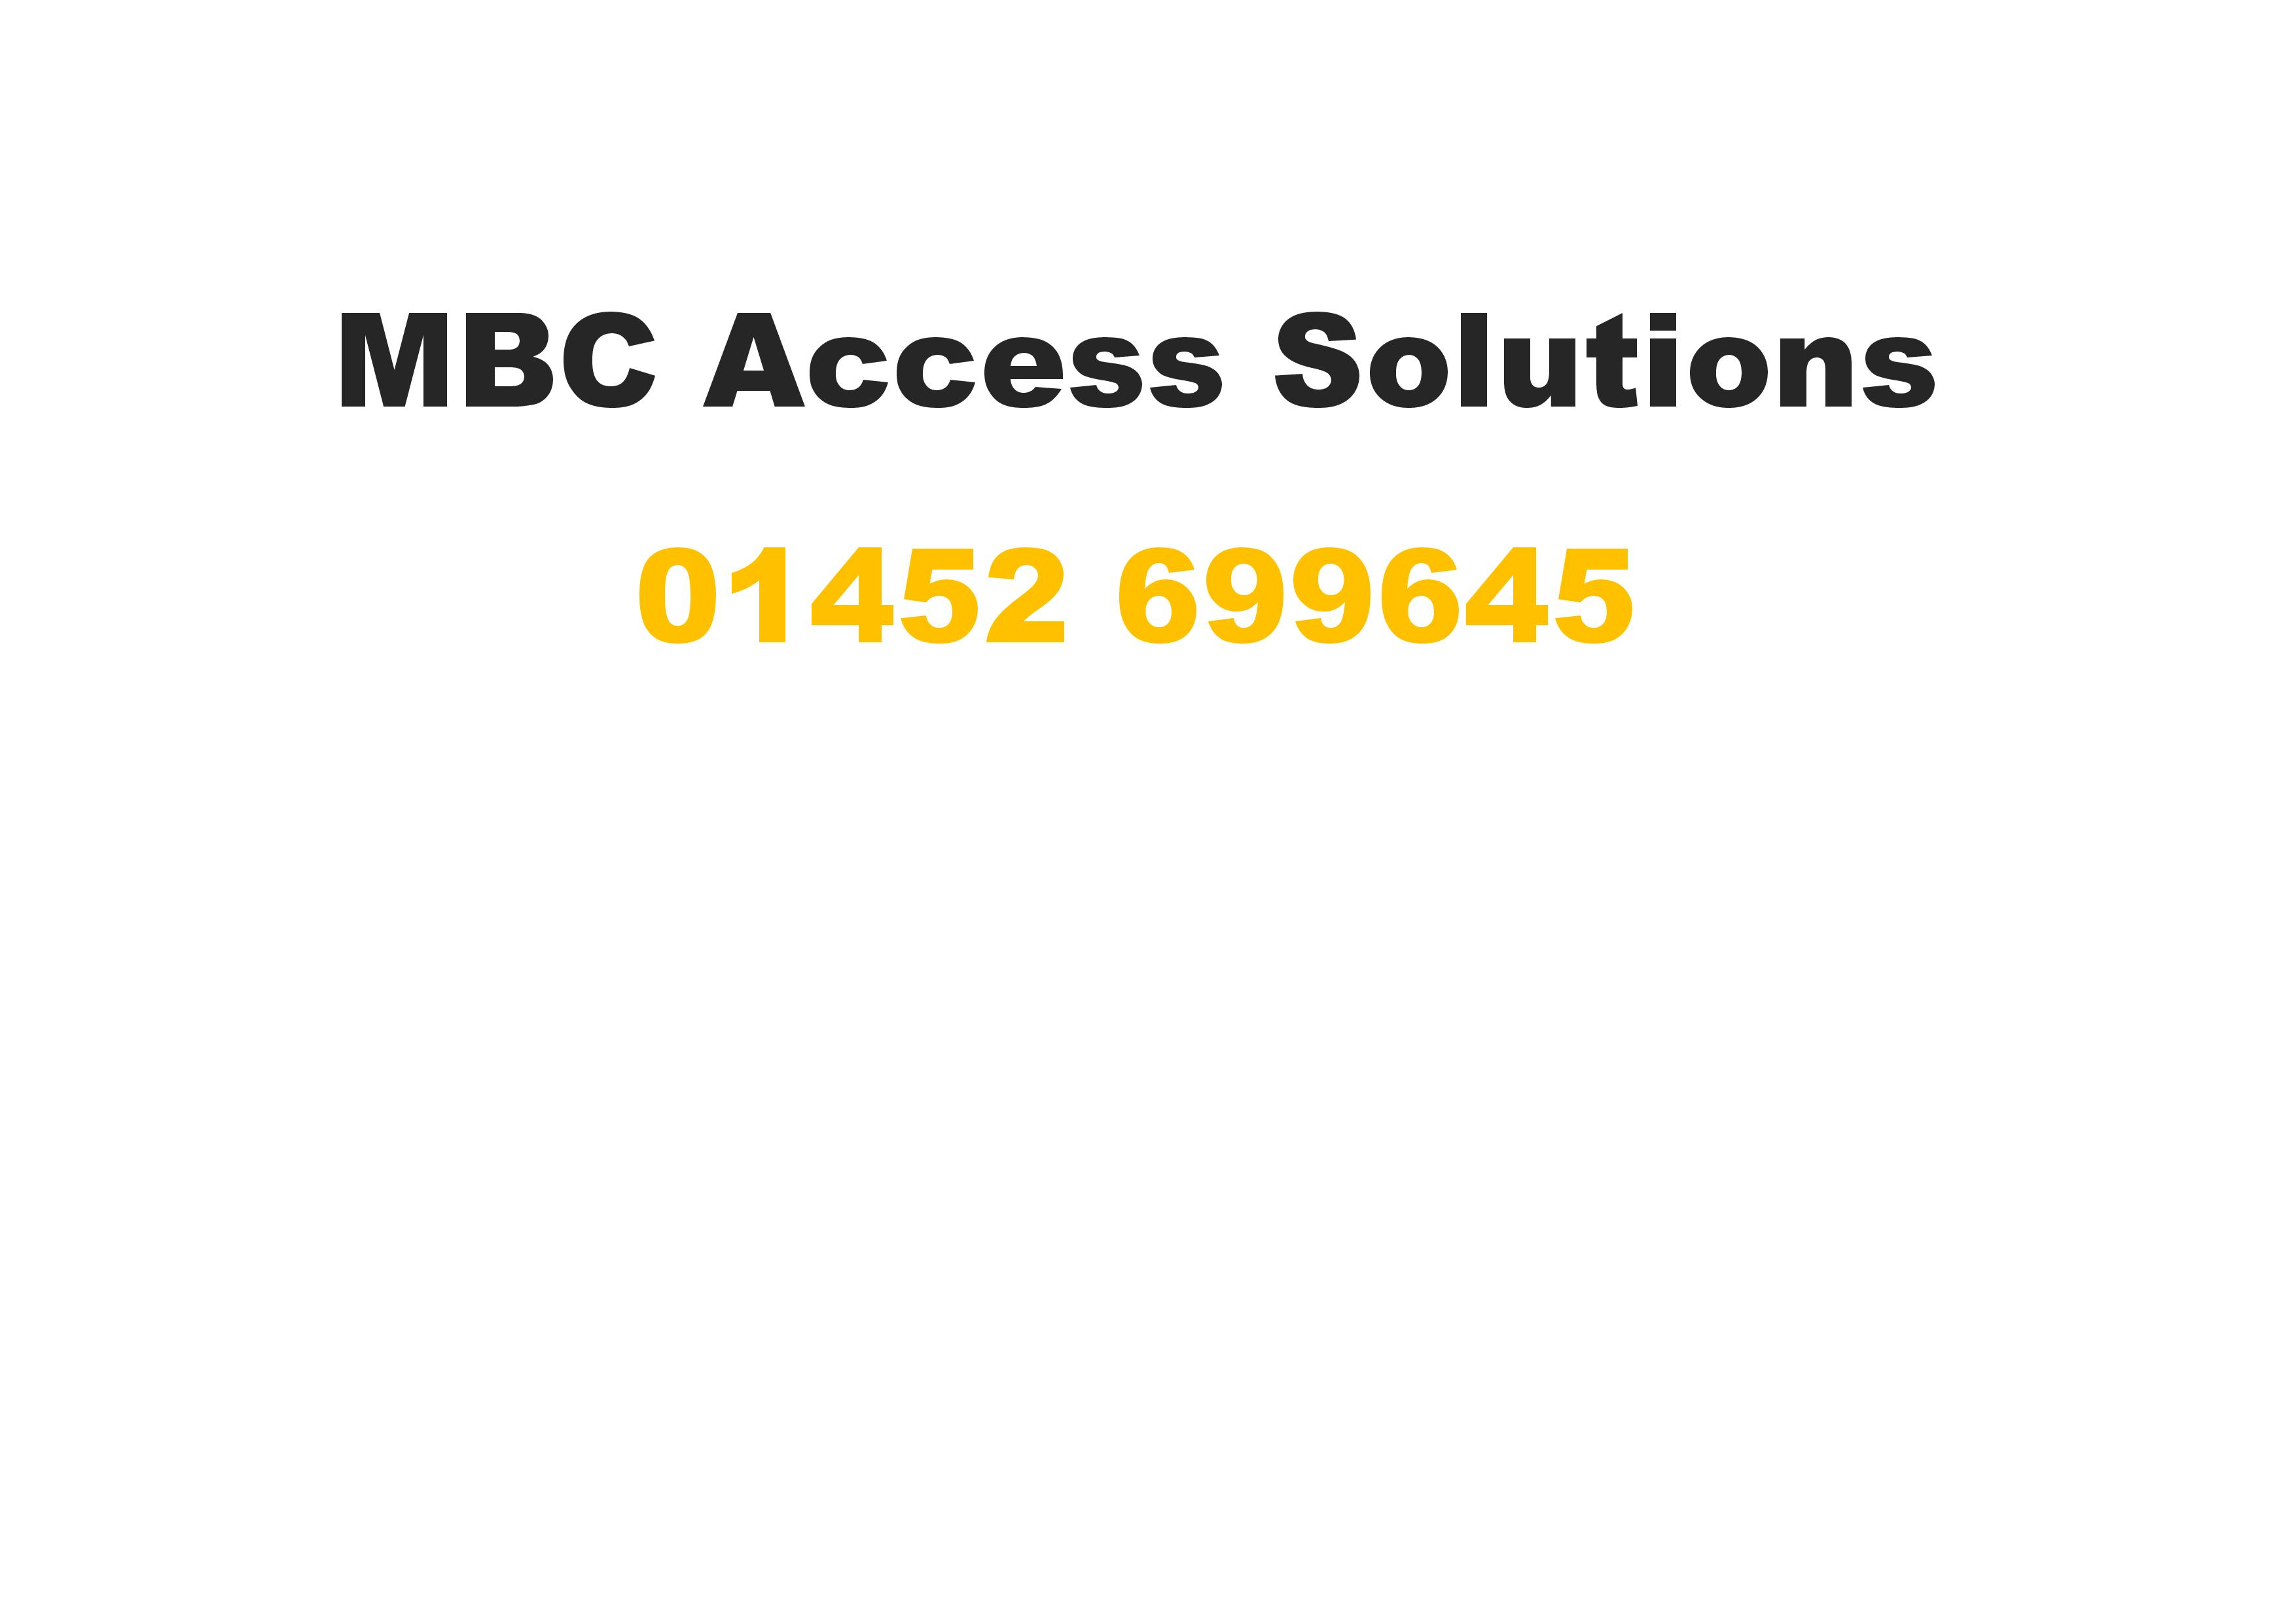 MBC Access Solutions